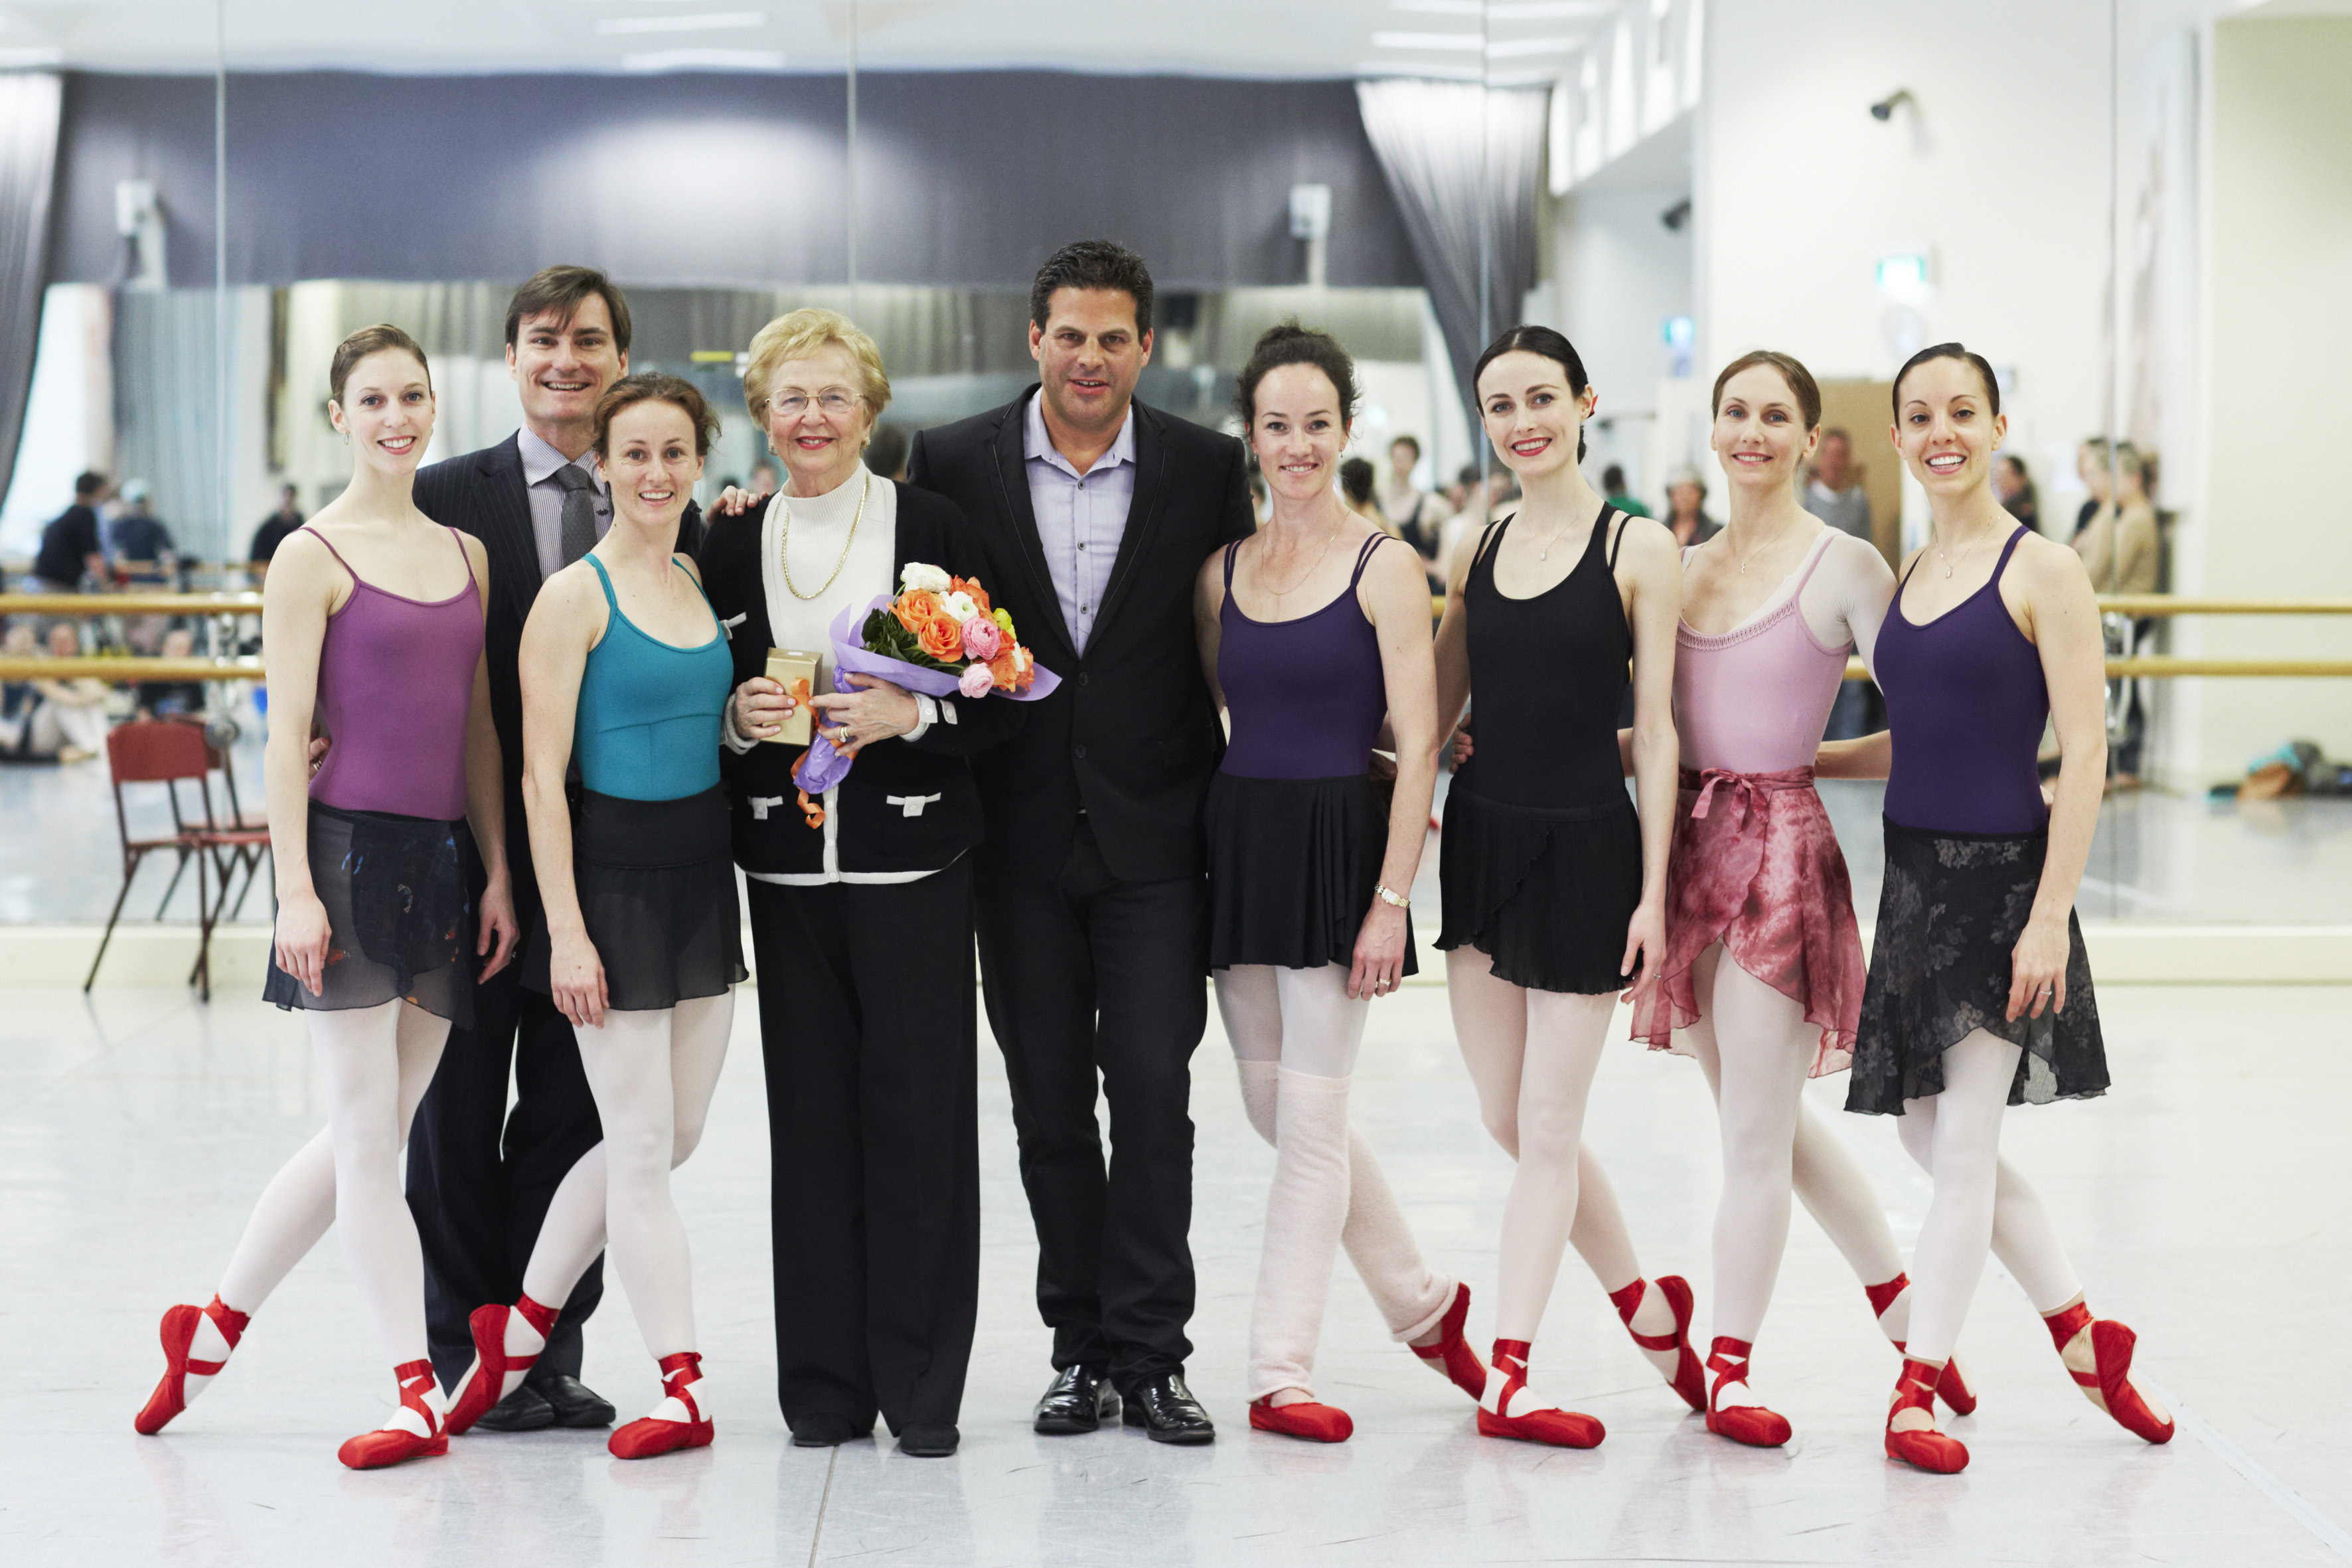 Betty Bloch and Simon Wilkenfeld of Bloch with David McAllister and dancers of The Australian Ballet. Photo by JamesBraund.